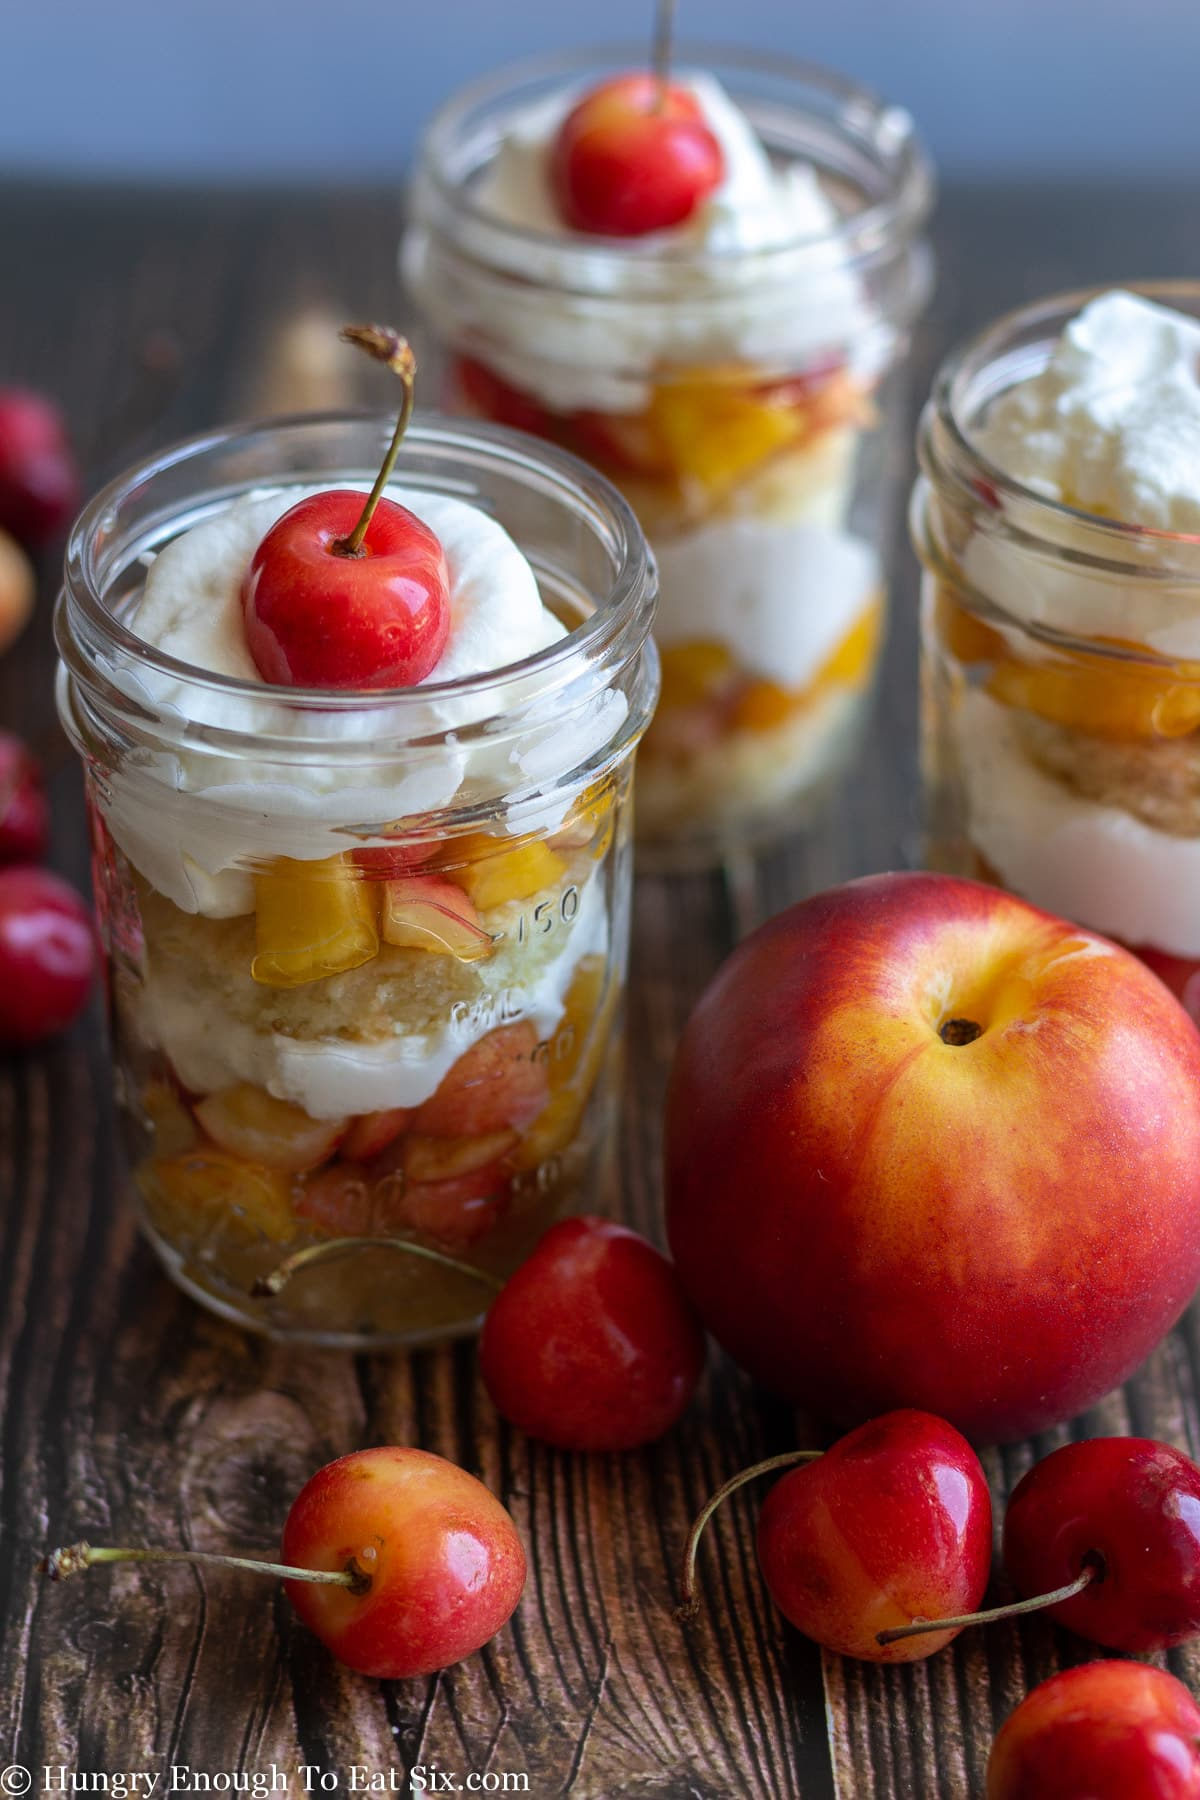 Whole nectarine and cherries next to a glass jar holding a fruit and cream trifle.